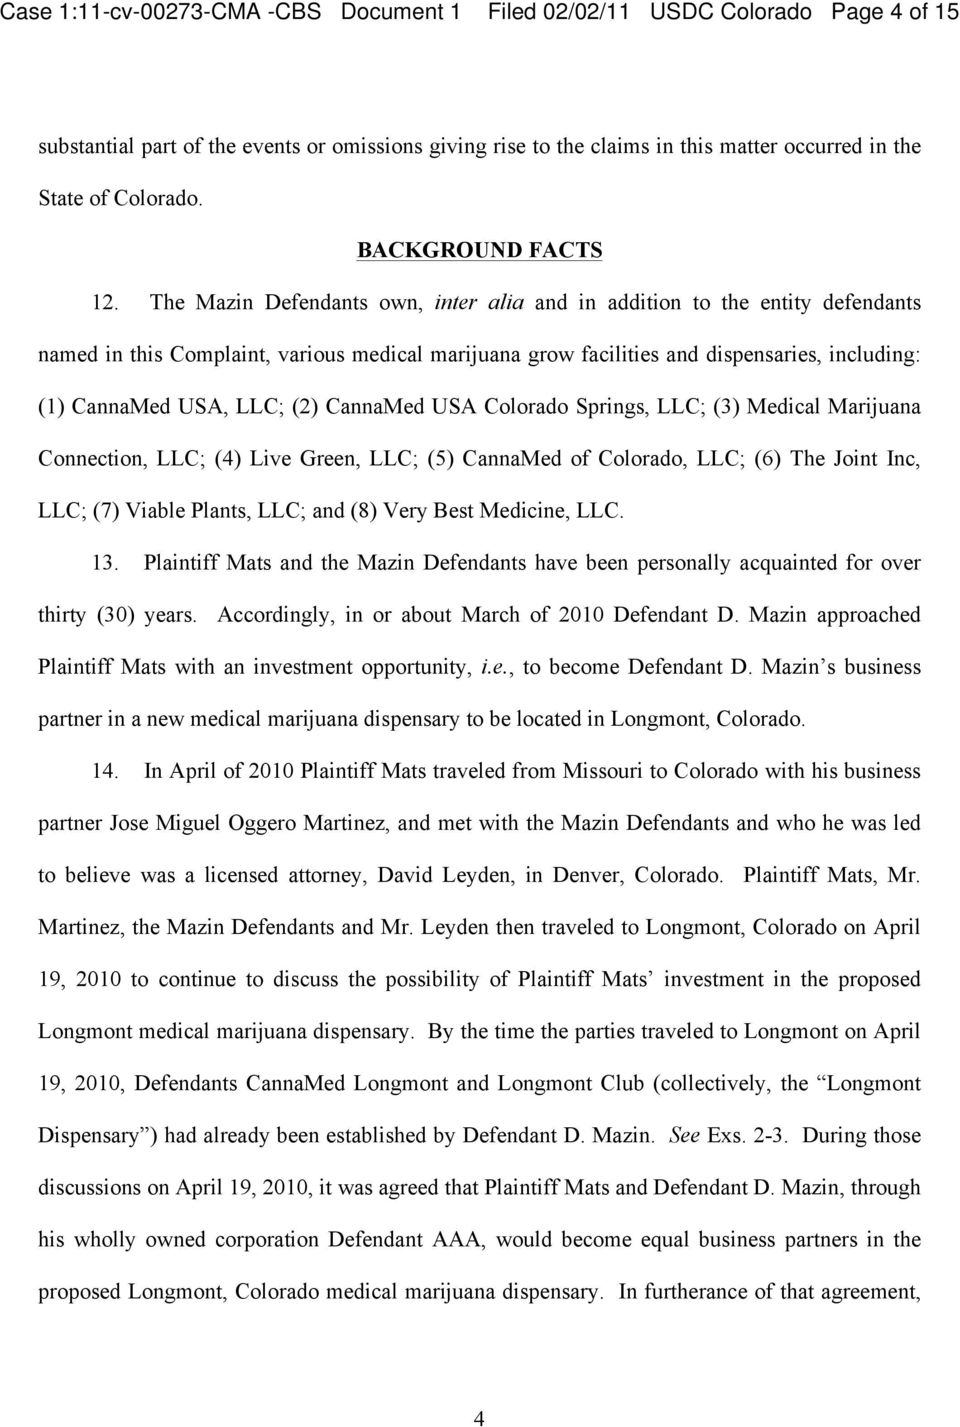 The Mazin Defendants own, inter alia and in addition to the entity defendants named in this Complaint, various medical marijuana grow facilities and dispensaries, including: (1) CannaMed USA, LLC;